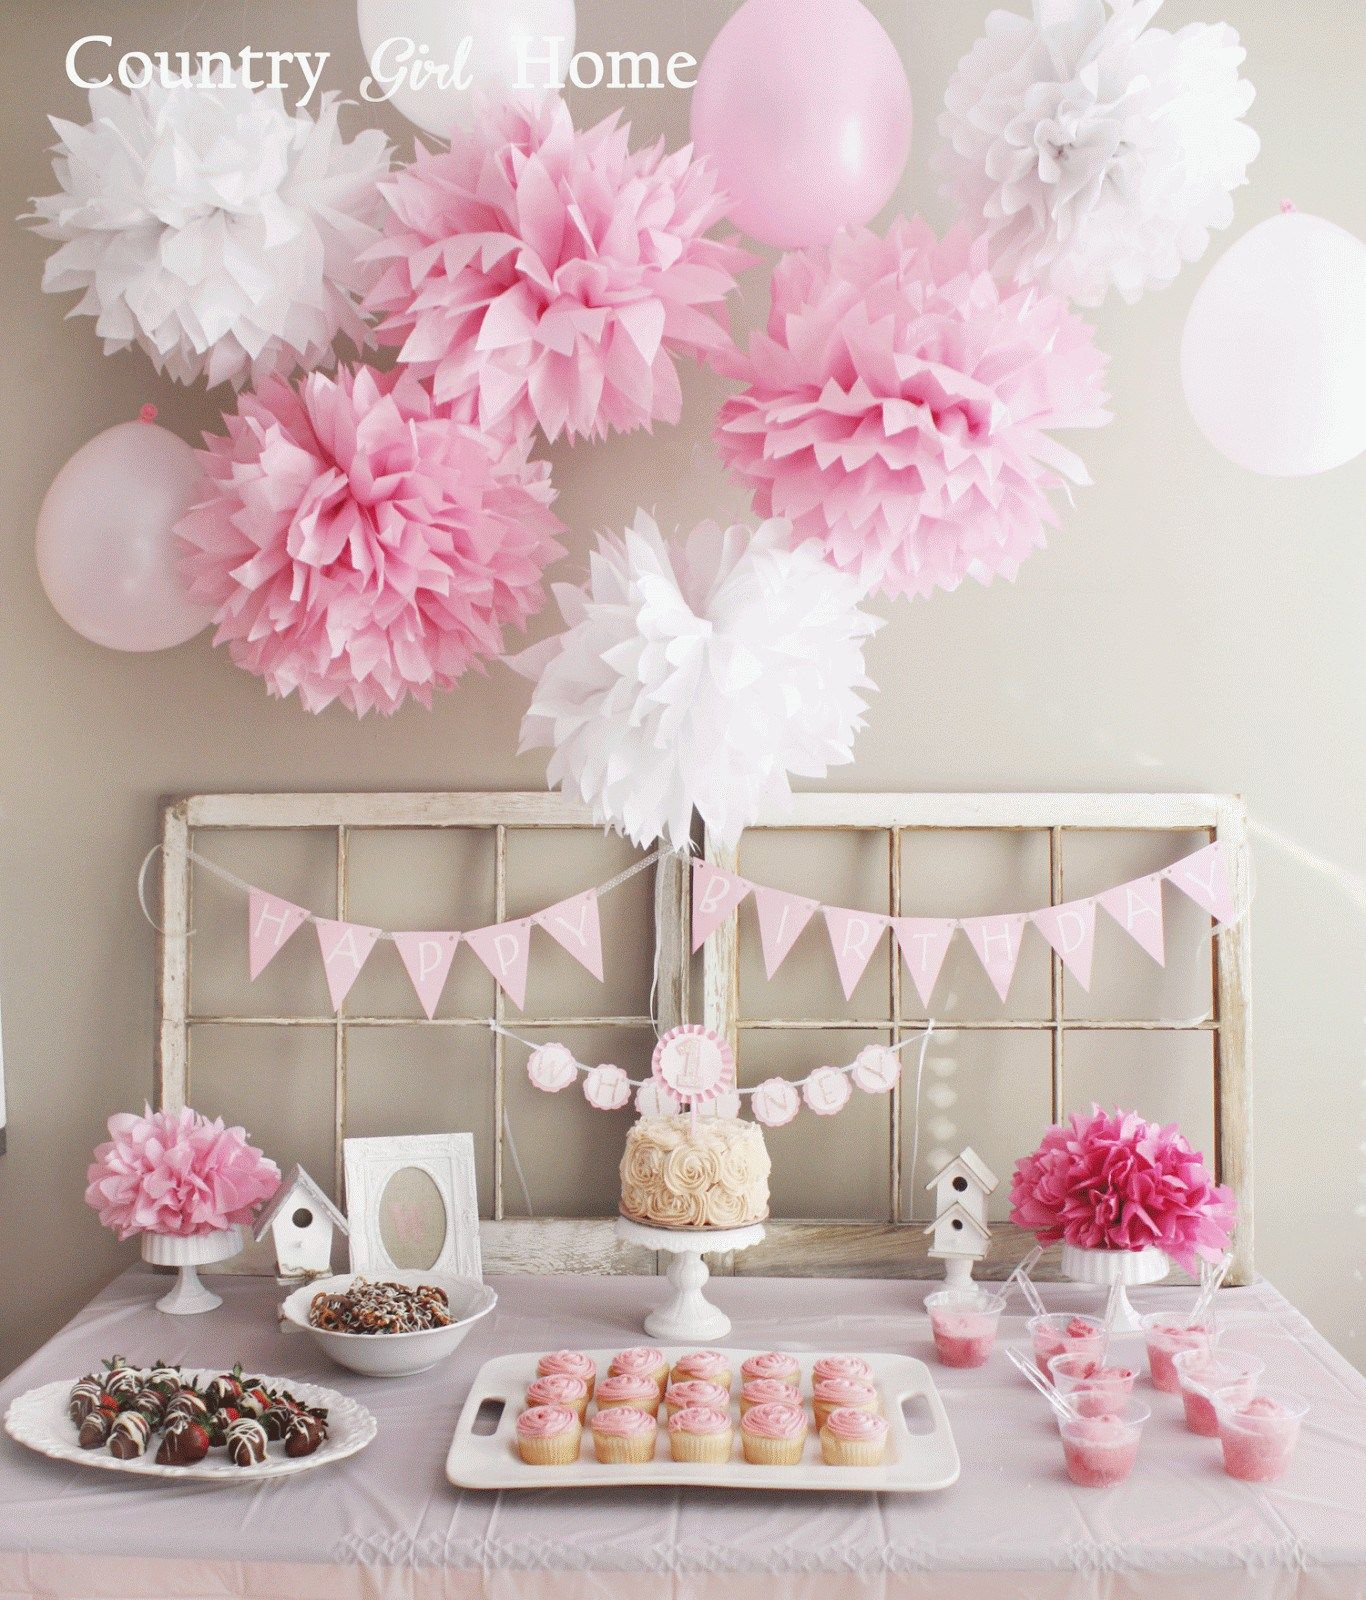 Decoration For Home For Cheap: Fresh First Birthday Decoration Ideas At Home For Girl